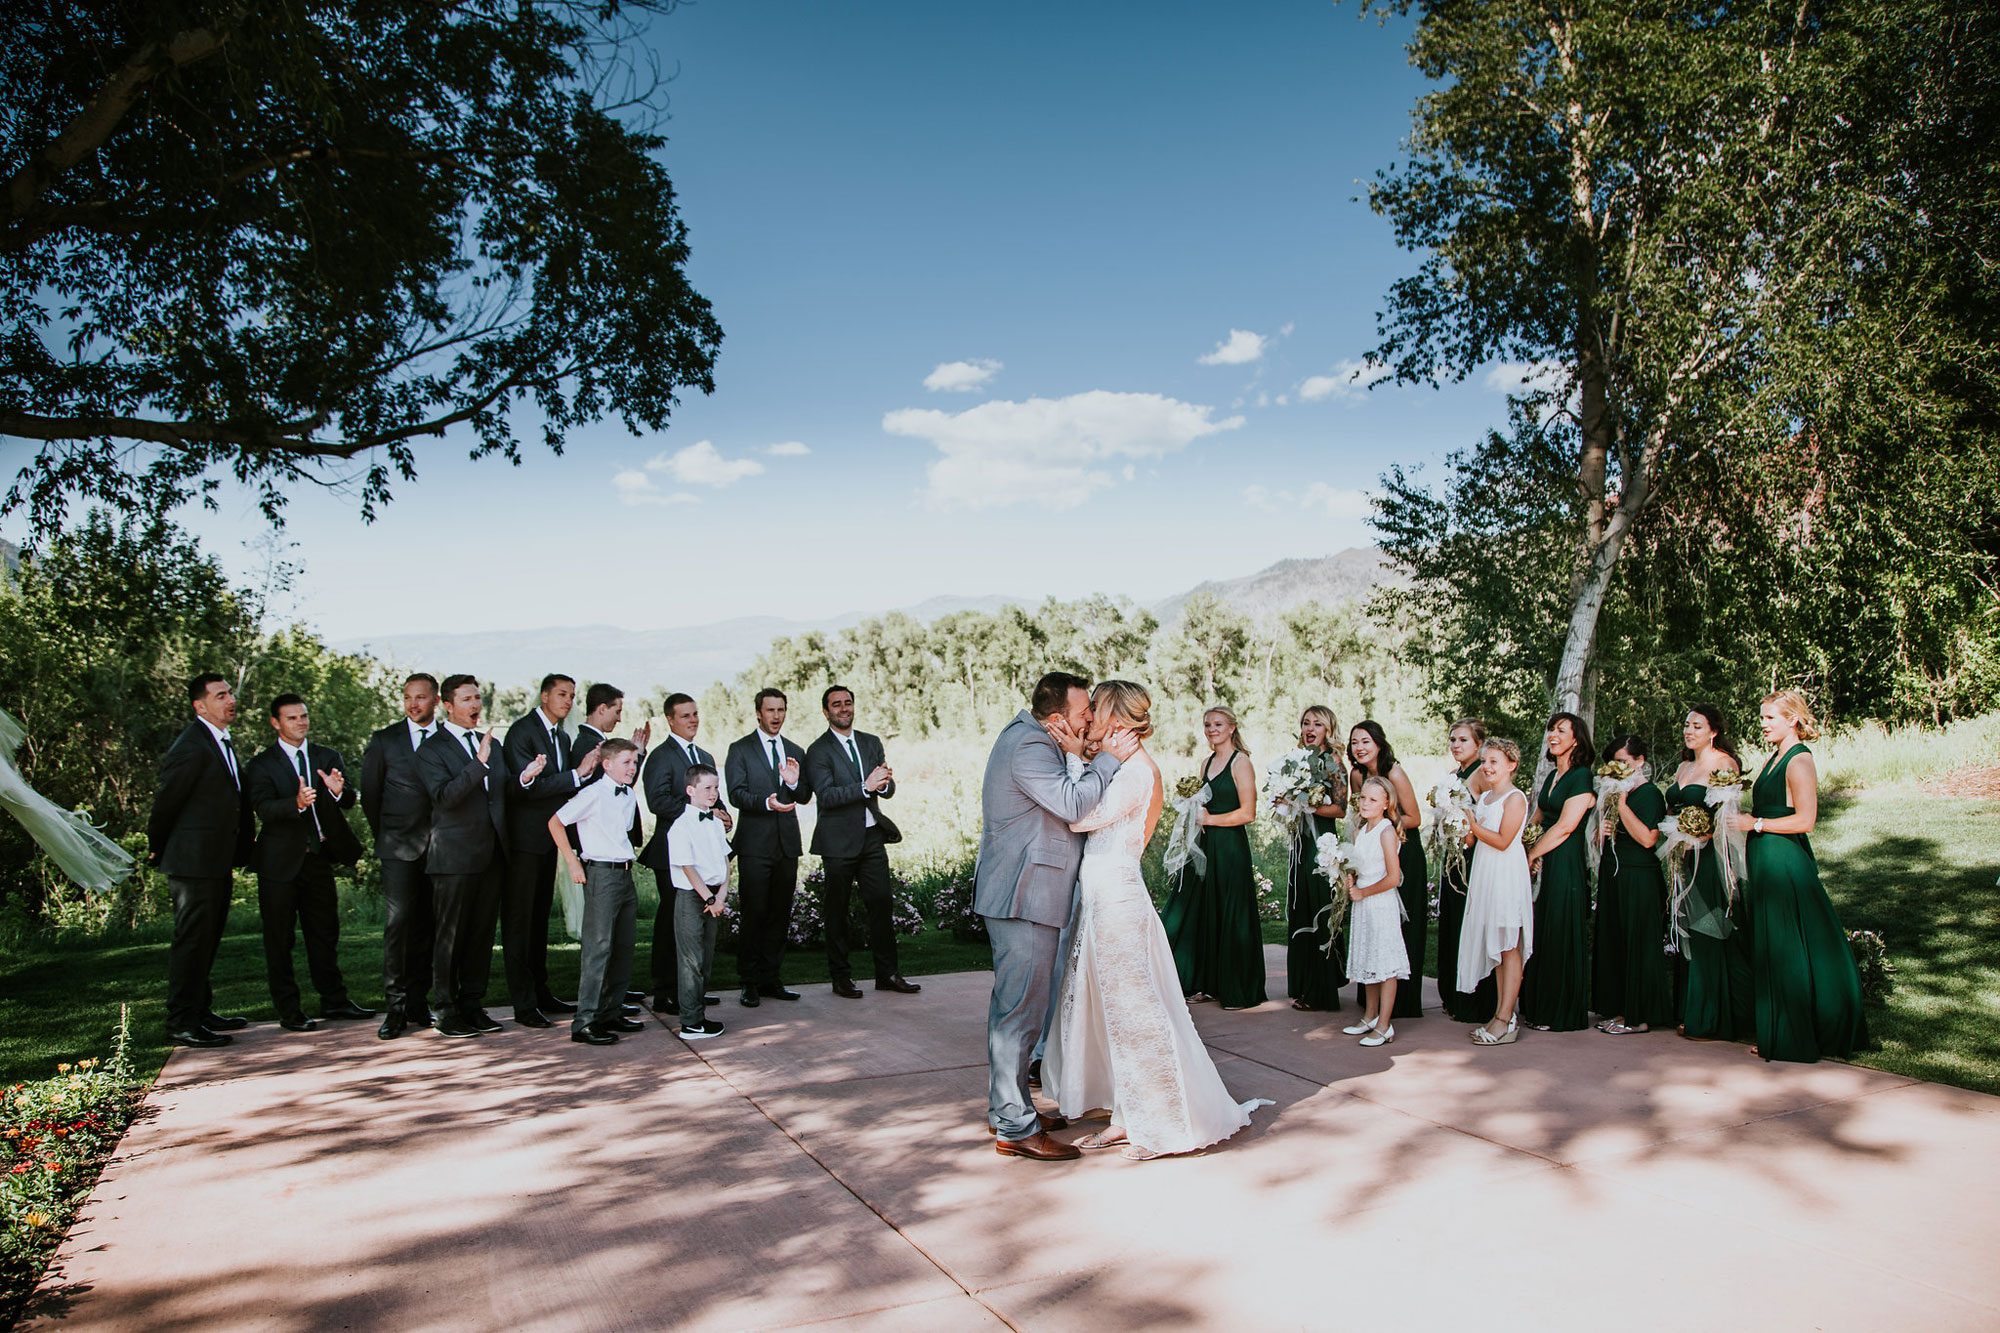 A Simply Elegant Irish Wedding at Dalton Ranch, Durango Colorado